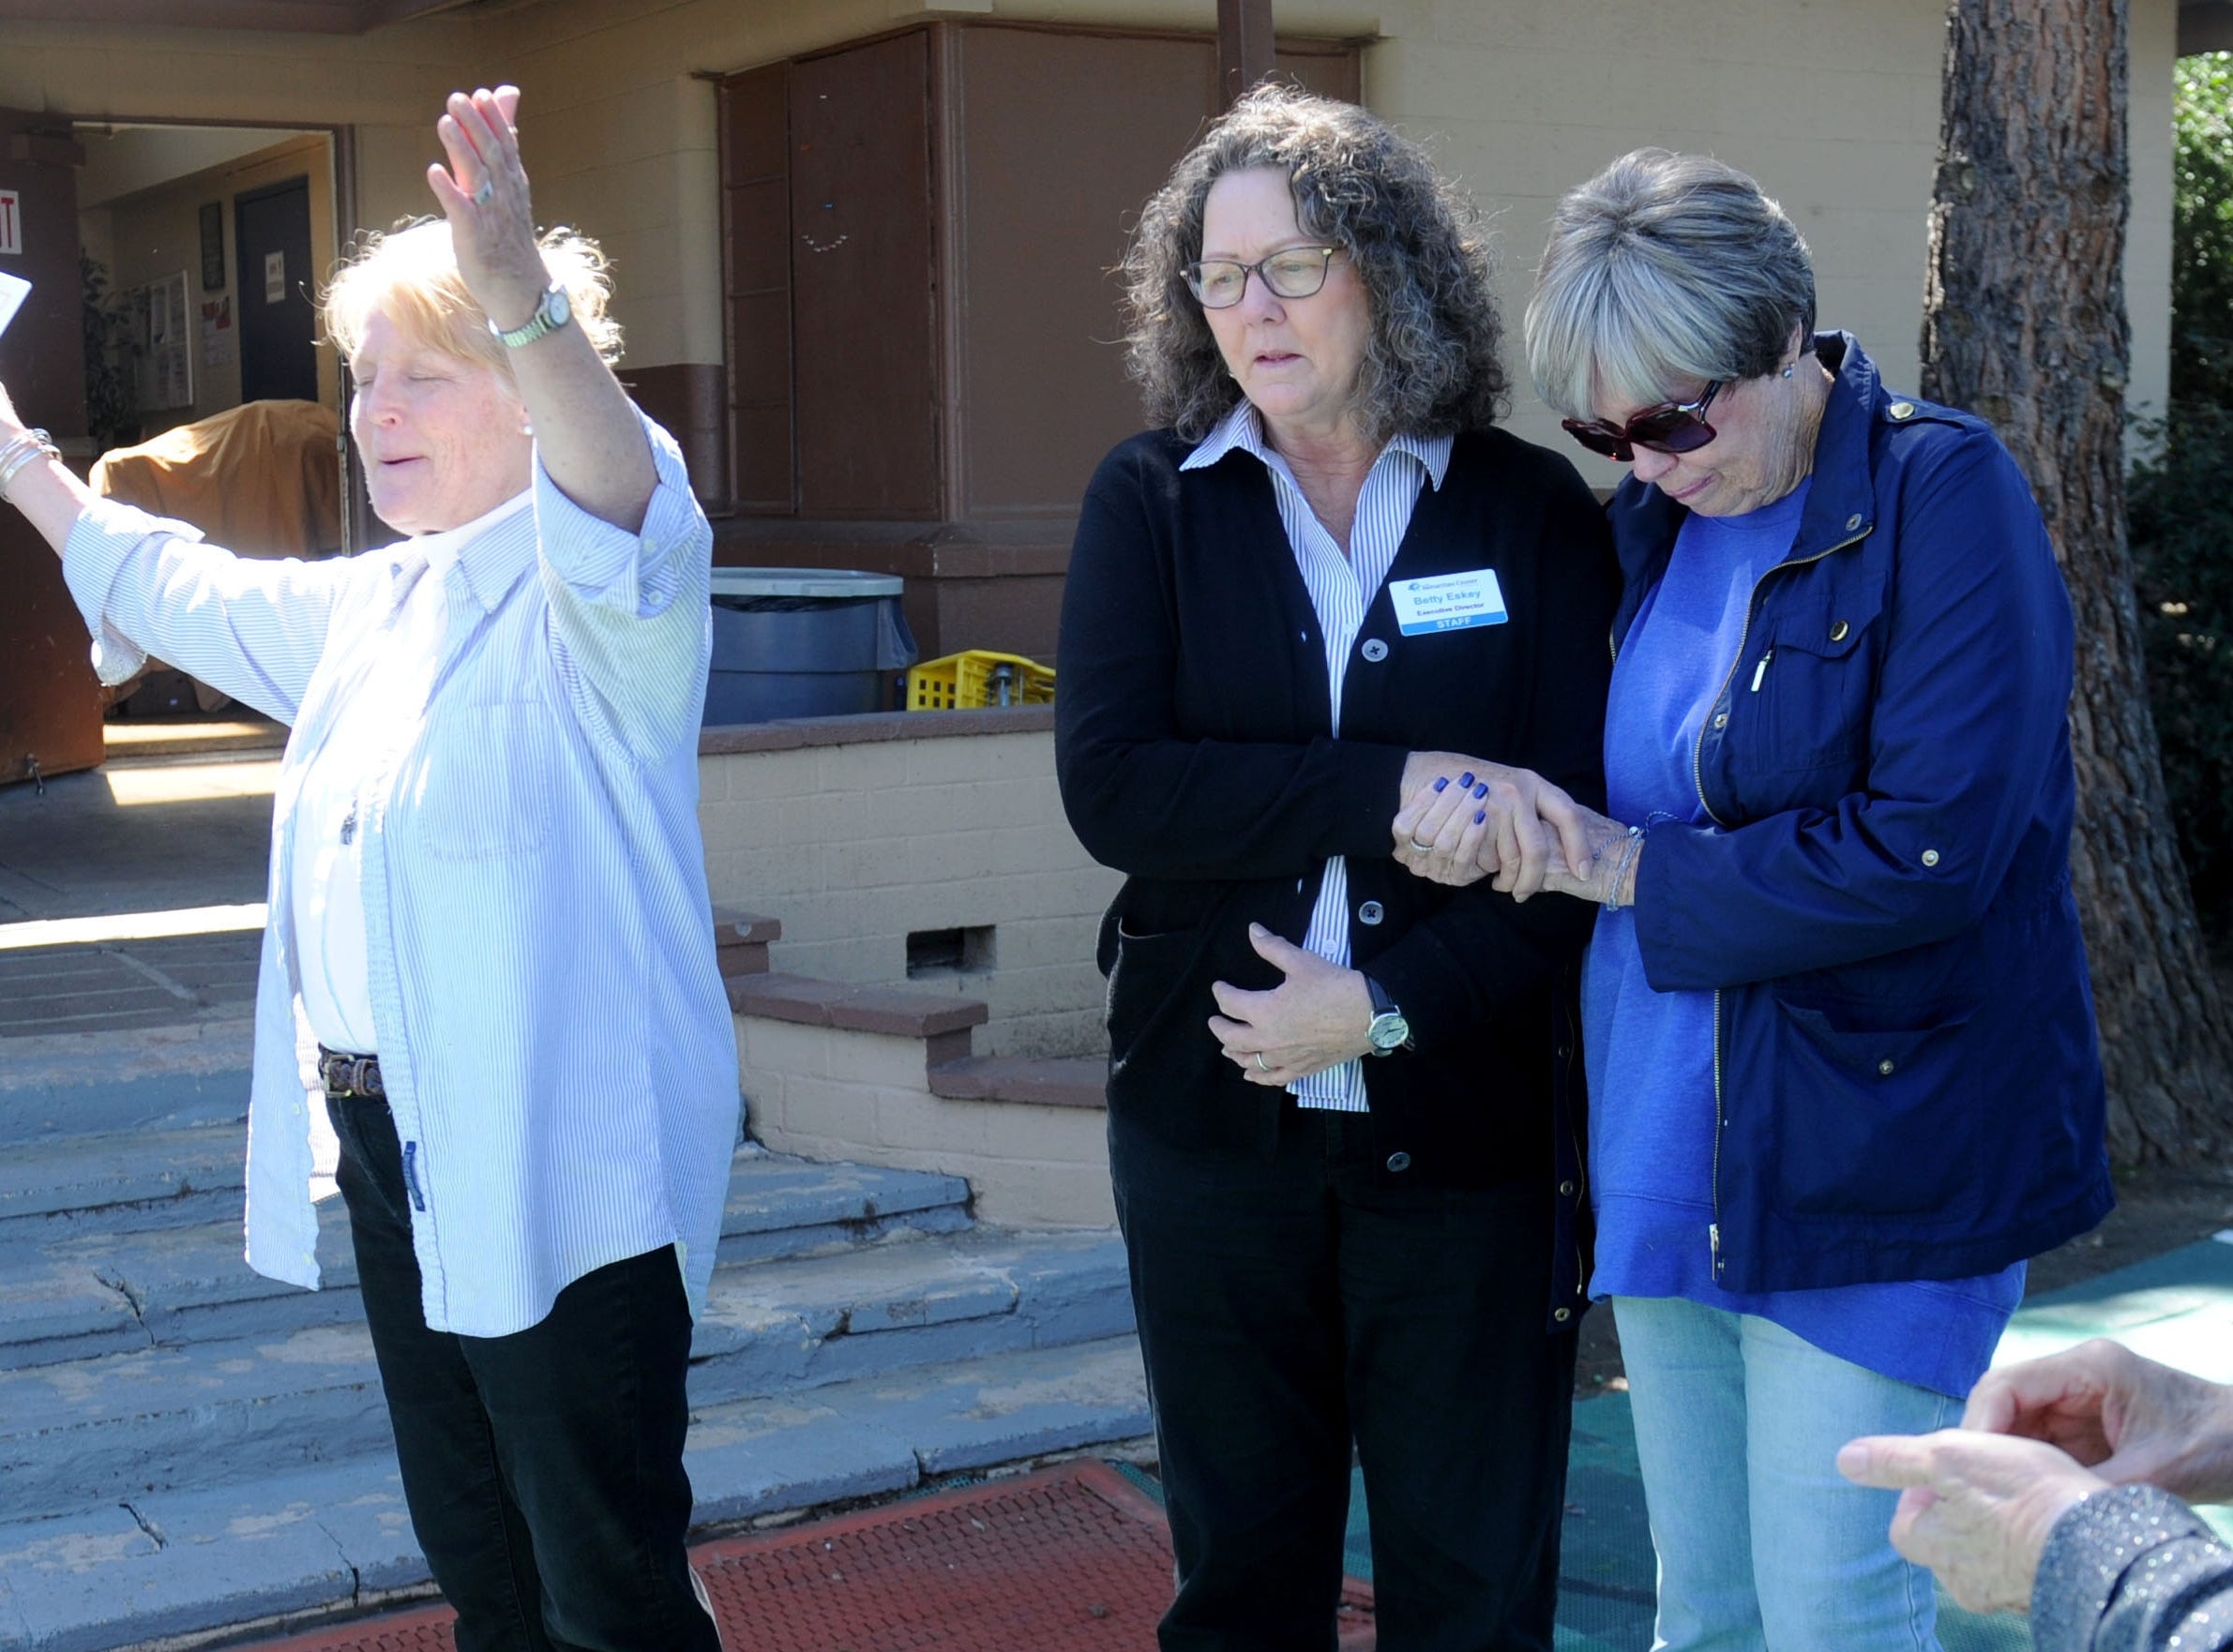 Celebrating the life of Gerald Munyon are, from left, the Rev. Sarah Kitch of St. Francis of Assisi Episcopal Church; Betty Eskey, executive director of the Samaritan Center of Simi Valley; and volunteer April Budak. The center held a memorial service Wednesday for Munyon, who was killed by a car while sleeping in an alley in February.